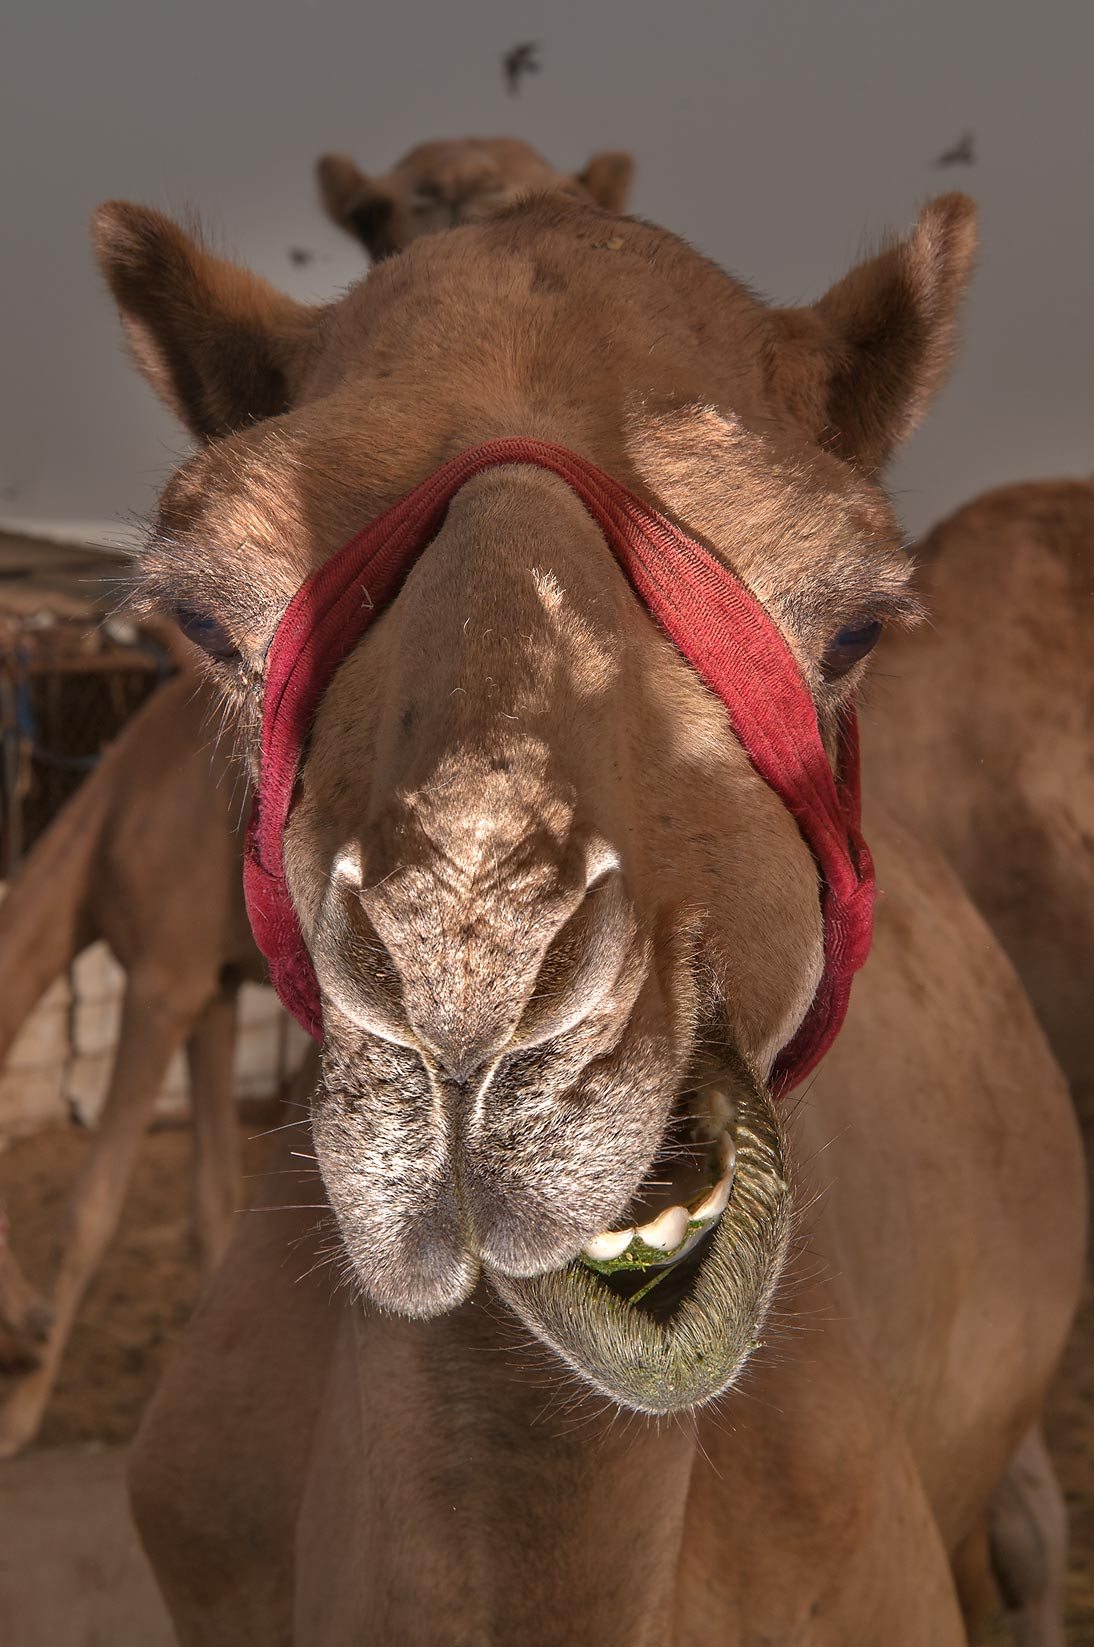 Chewing camel in livestock markets in Abu Hamour. Doha, Qatar